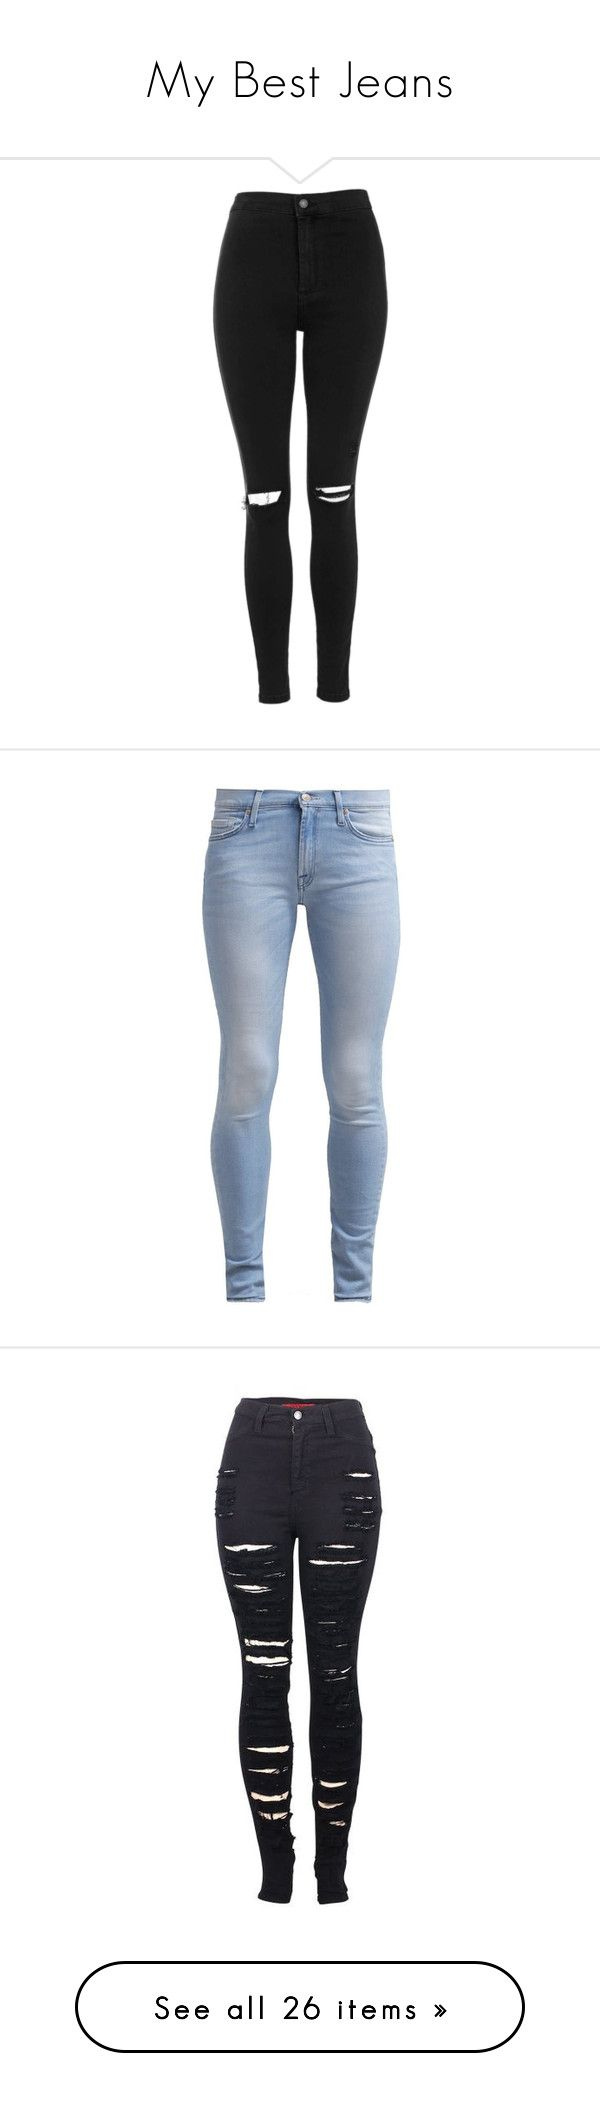 """""""My Best Jeans"""" by thaisa-tcs ❤ liked on Polyvore featuring jeans, pants, bottoms, black, destroyed skinny jeans, black ripped jeans, black distressed jeans, black distressed skinny jeans, high waisted skinny jeans and jeans/pants"""